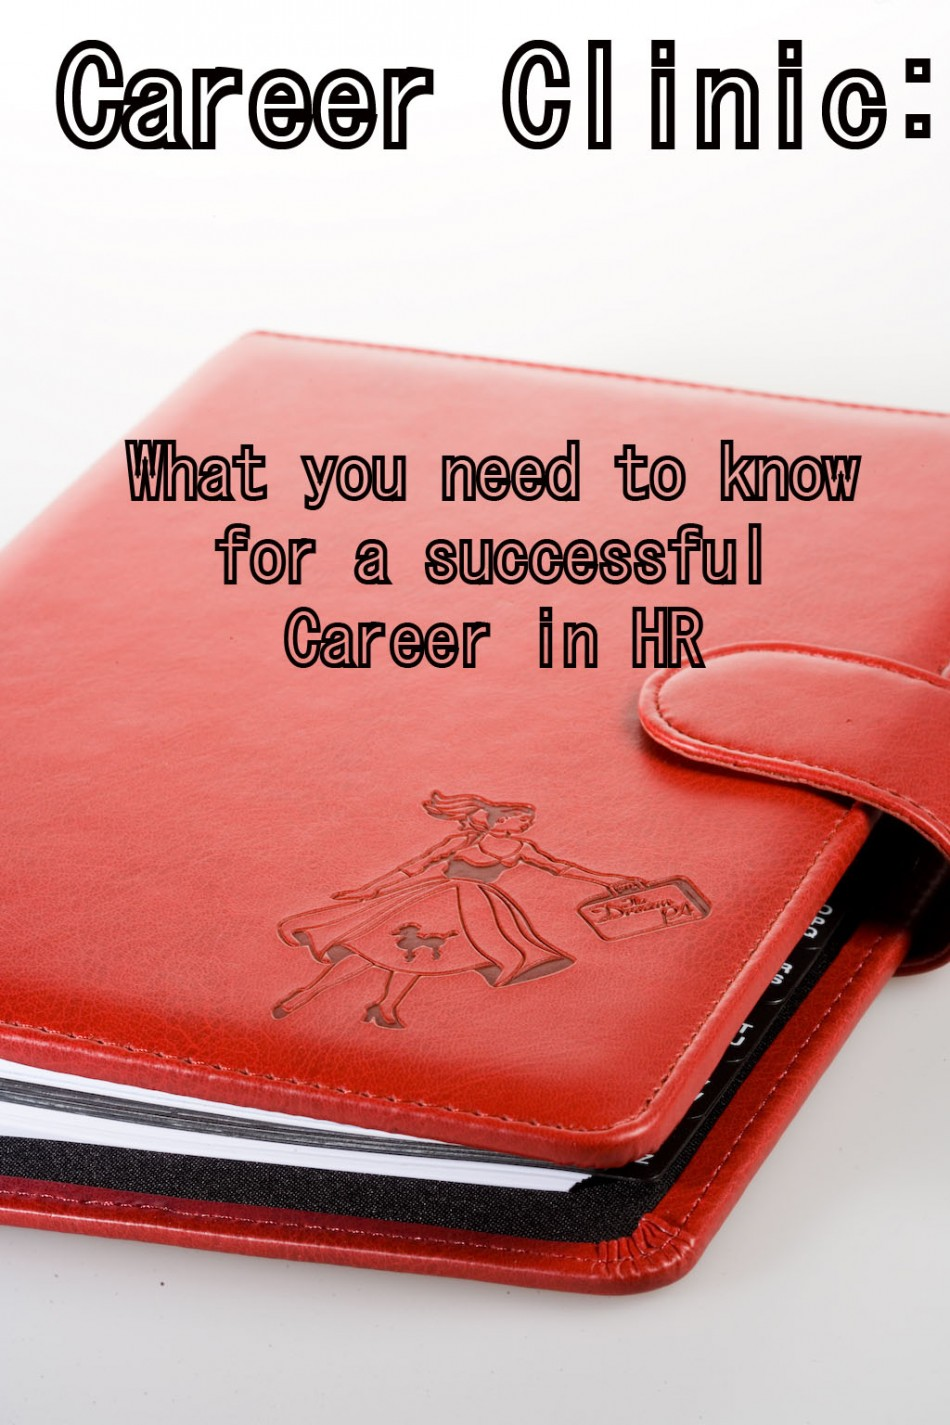 A career in HR